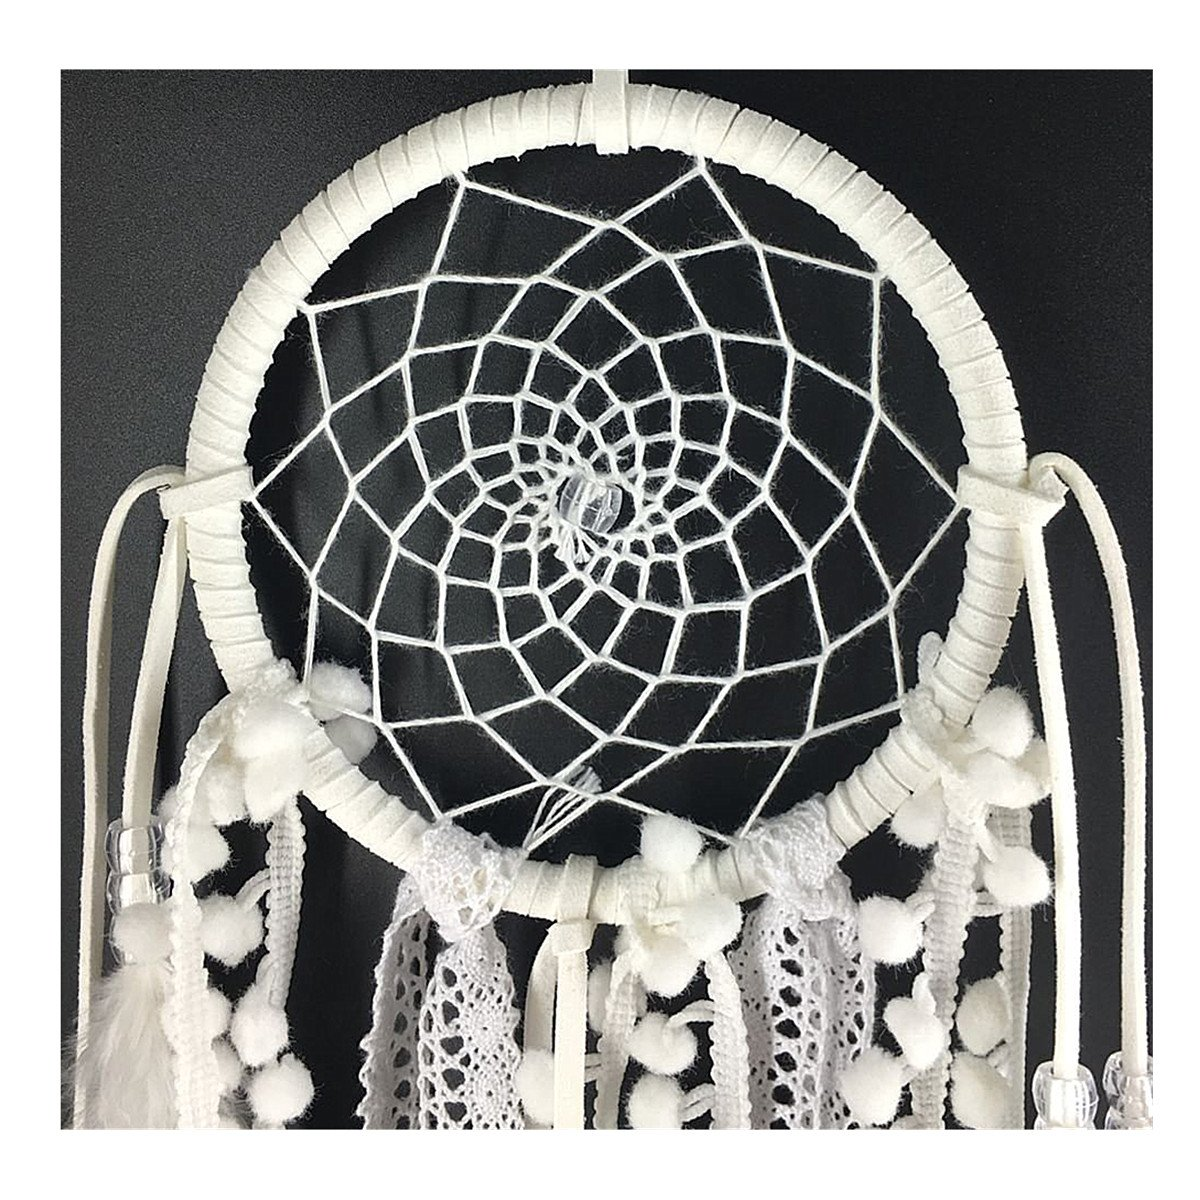 Dremisland Dream catcher handmade traditional white feather dream catcher wall hanging car hanging decoration ornament gift Dia 7